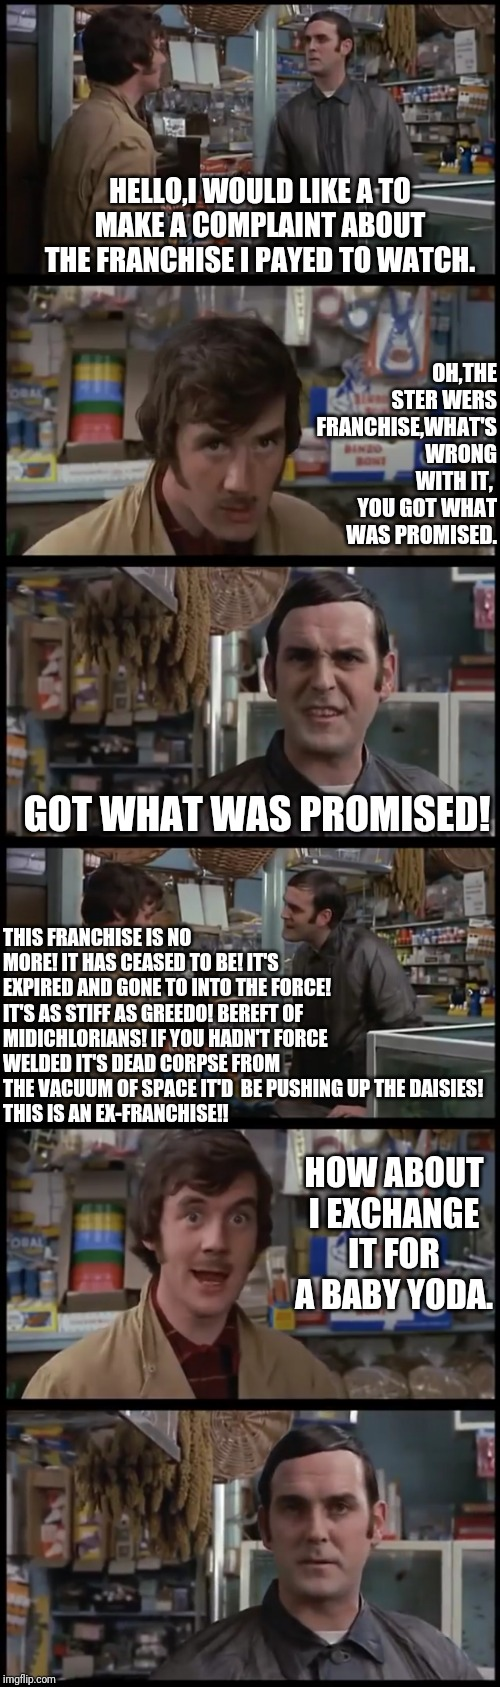 Monty Python Dead Franchise Skit |  HELLO,I WOULD LIKE A TO MAKE A COMPLAINT ABOUT THE FRANCHISE I PAYED TO WATCH. OH,THE STER WERS FRANCHISE,WHAT'S WRONG WITH IT,  YOU GOT WHAT WAS PROMISED. GOT WHAT WAS PROMISED! THIS FRANCHISE IS NO MORE! IT HAS CEASED TO BE! IT'S EXPIRED AND GONE TO INTO THE FORCE! IT'S AS STIFF AS GREEDO! BEREFT OF MIDICHLORIANS! IF YOU HADN'T FORCE WELDED IT'S DEAD CORPSE FROM THE VACUUM OF SPACE IT'D  BE PUSHING UP THE DAISIES! THIS IS AN EX-FRANCHISE!! HOW ABOUT I EXCHANGE IT FOR A BABY YODA. | image tagged in star wars,disney killed star wars,monty python | made w/ Imgflip meme maker